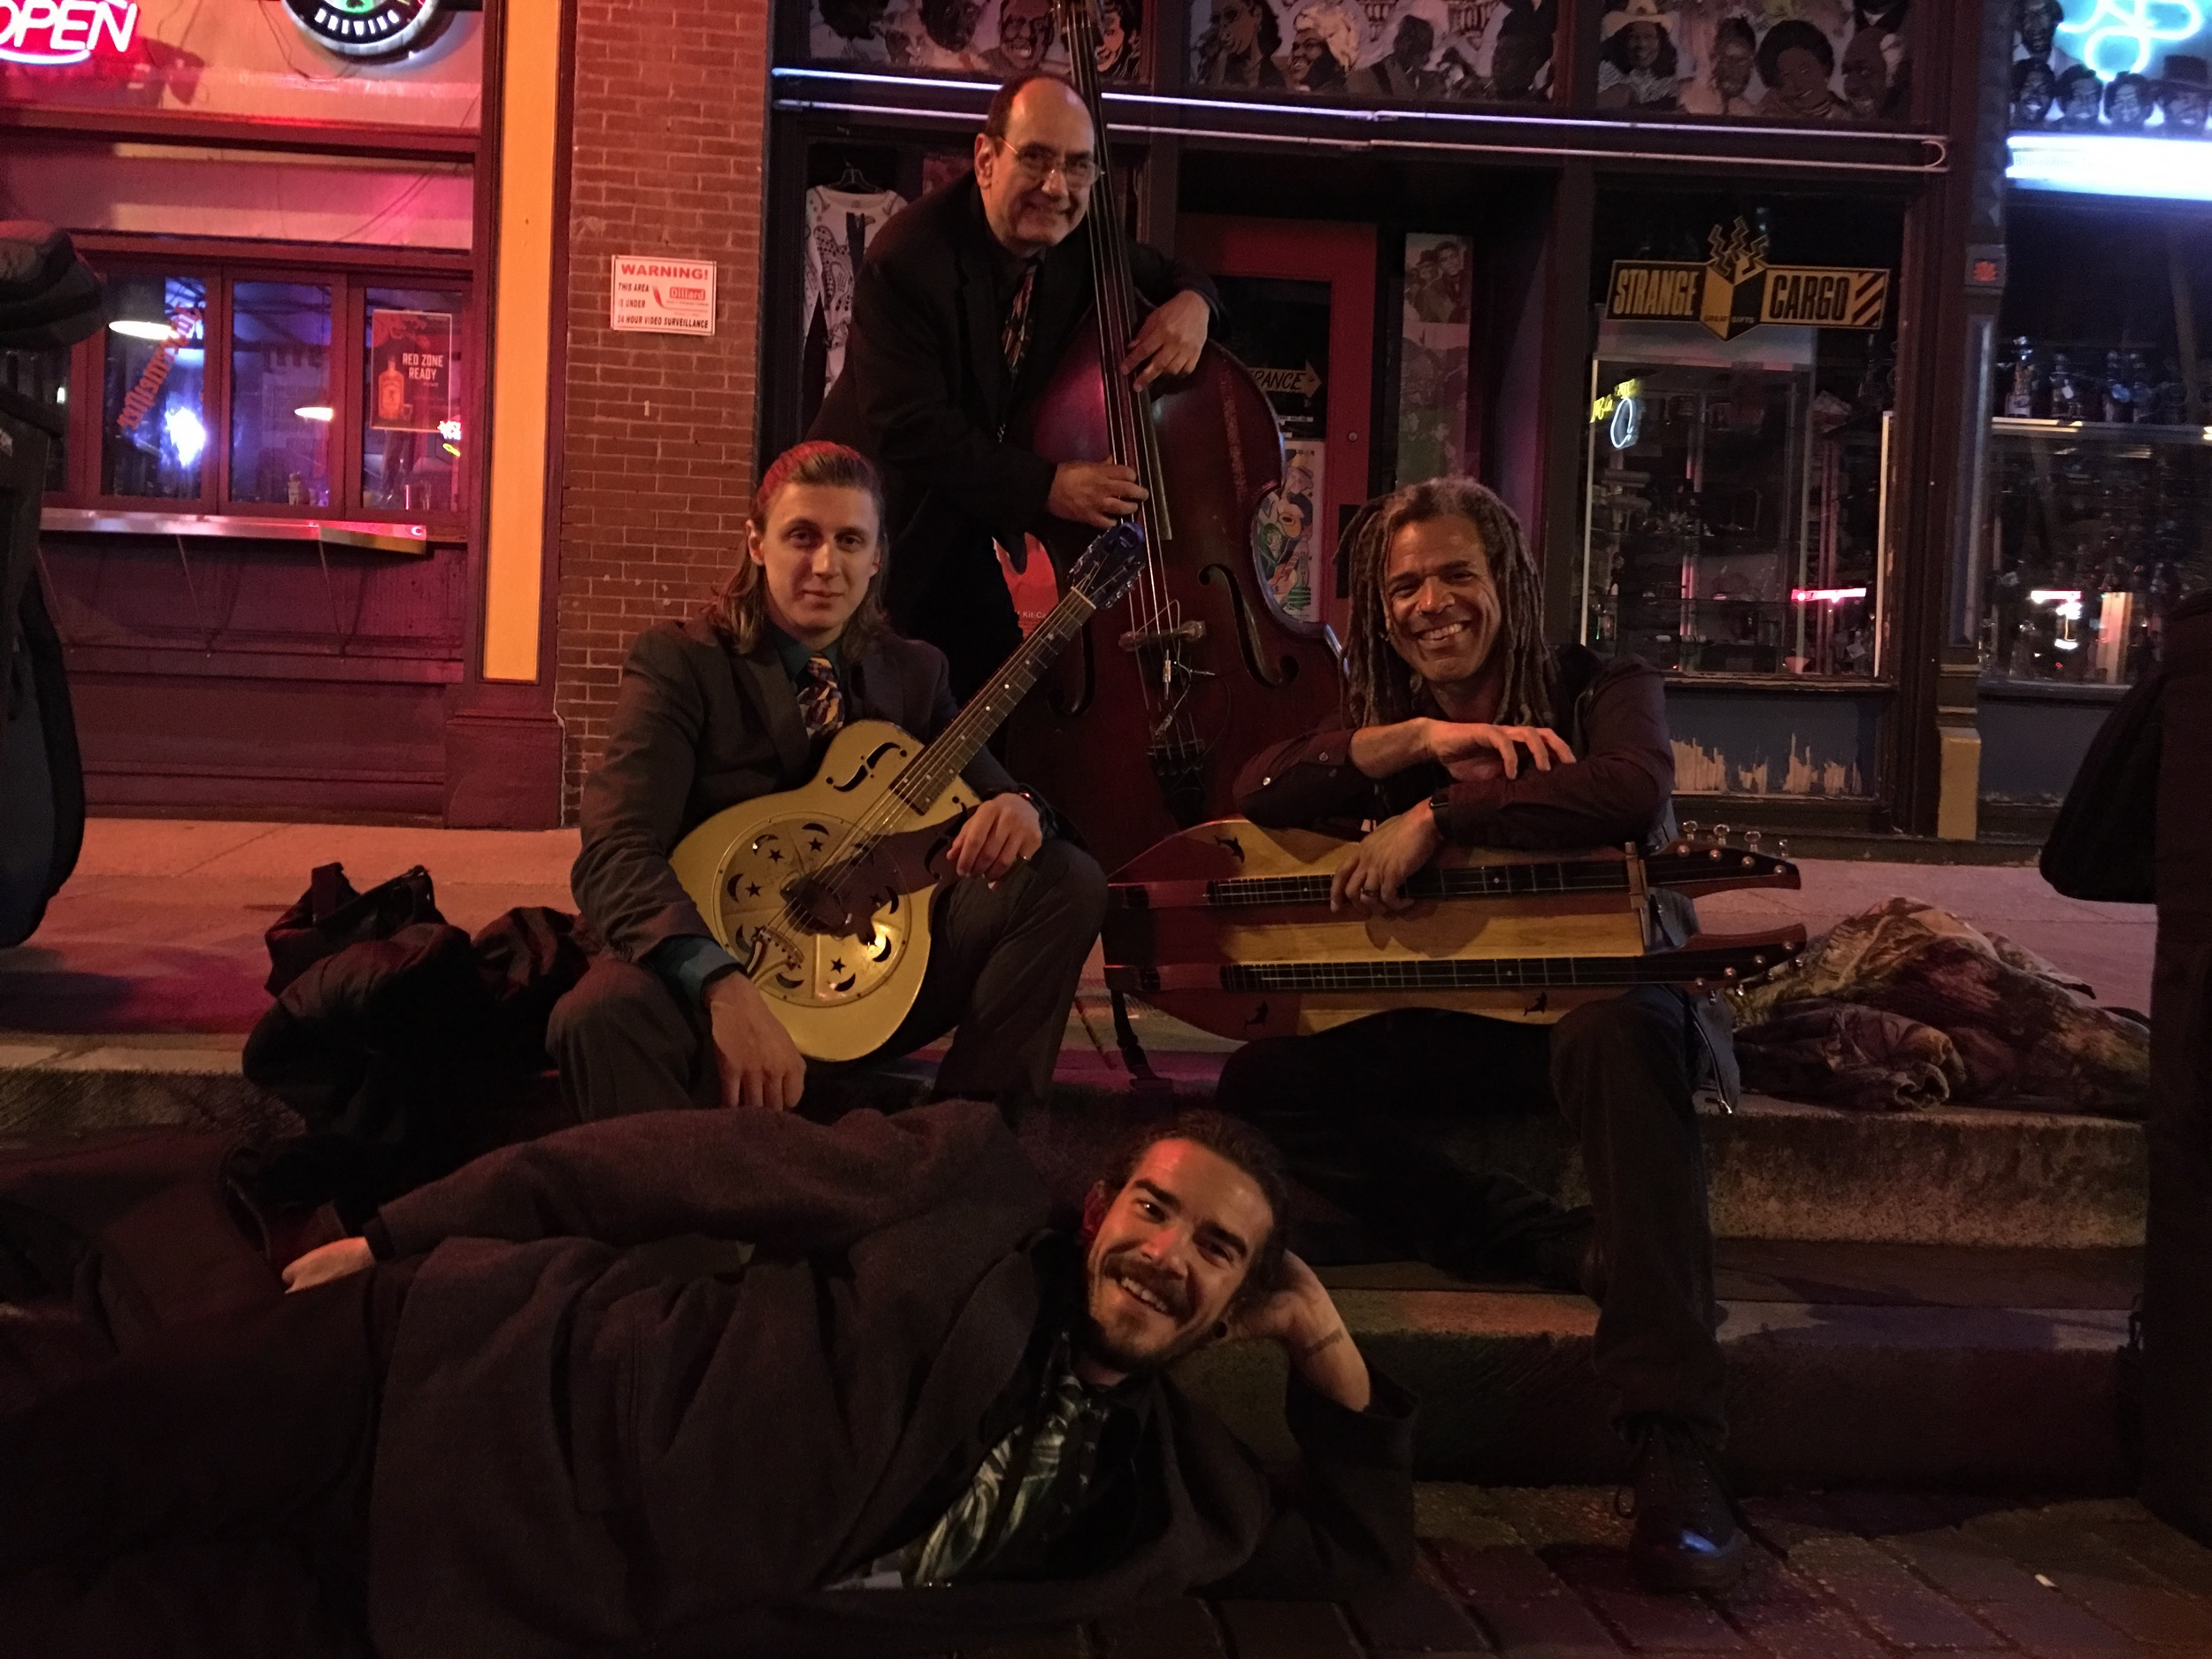 With The David Smash Band at 3 am on Beale after our impromptu street jam.